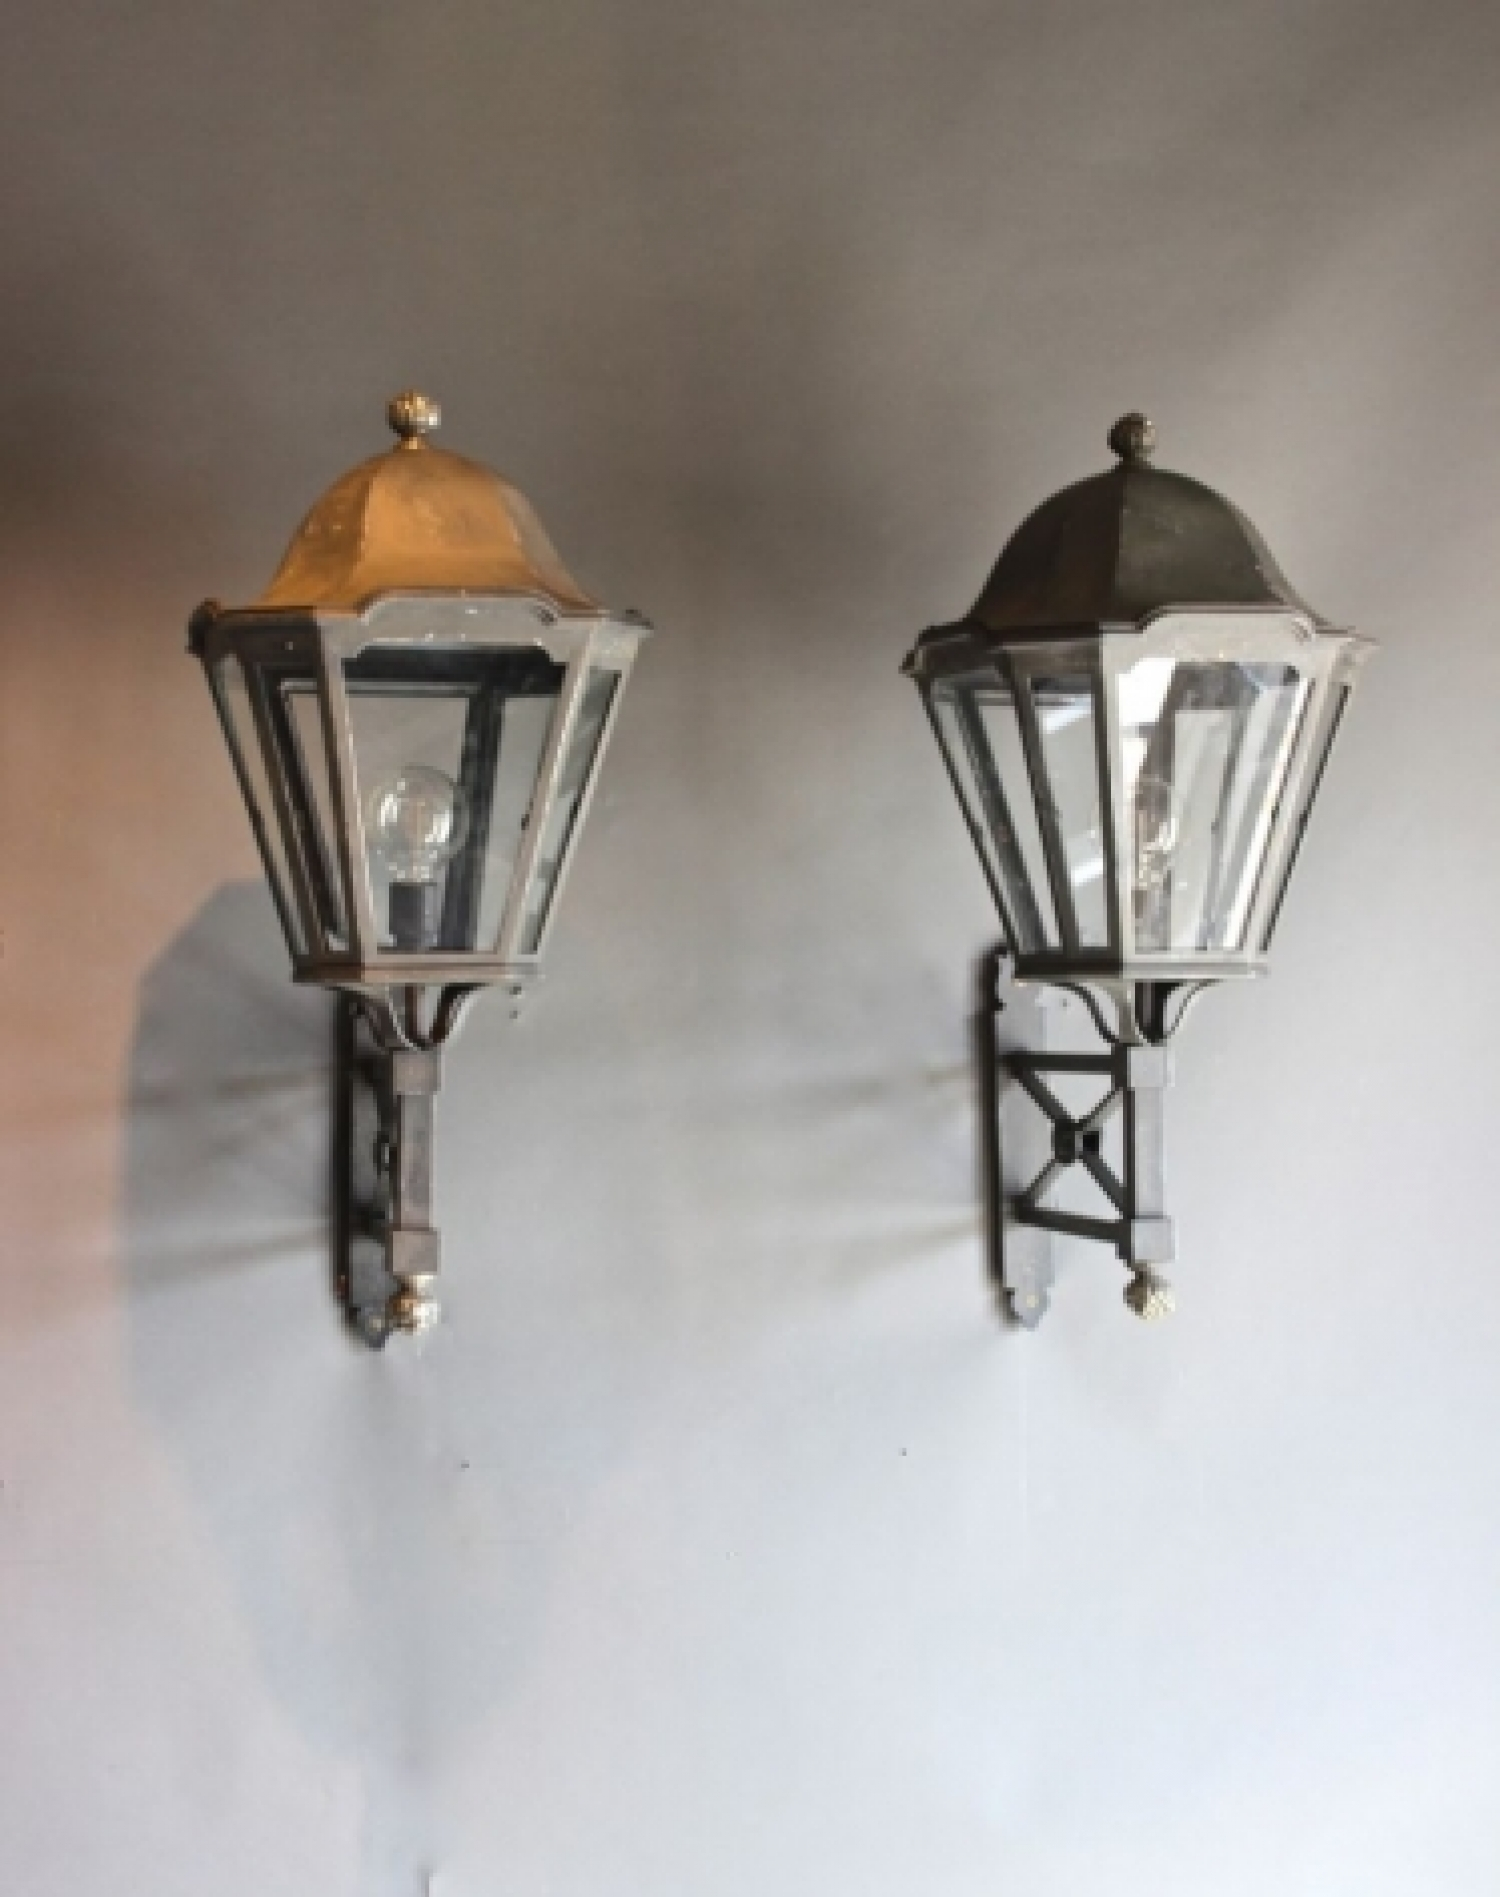 Antique Outside Lighting - Norfolk Decorative Antiques intended for Antique Outdoor Lanterns (Image 4 of 20)